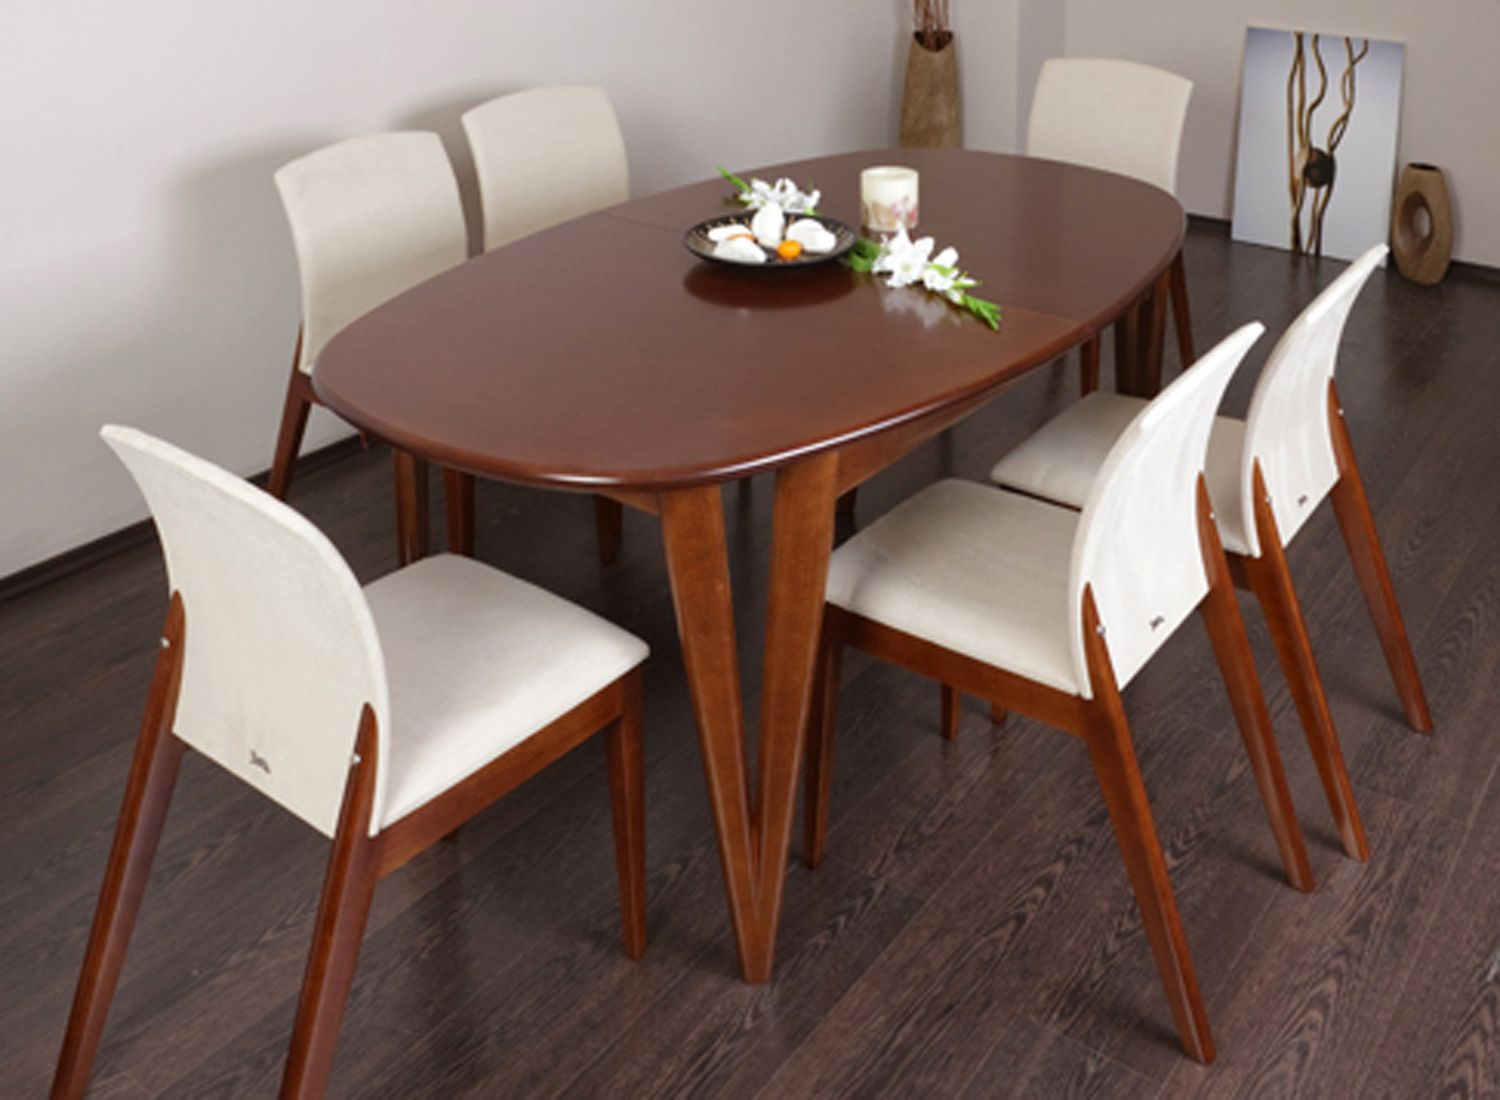 Dining Room Table Venice Extending Oval Dining Table New White Simple White Oval Dining Room Table Design Inspiration